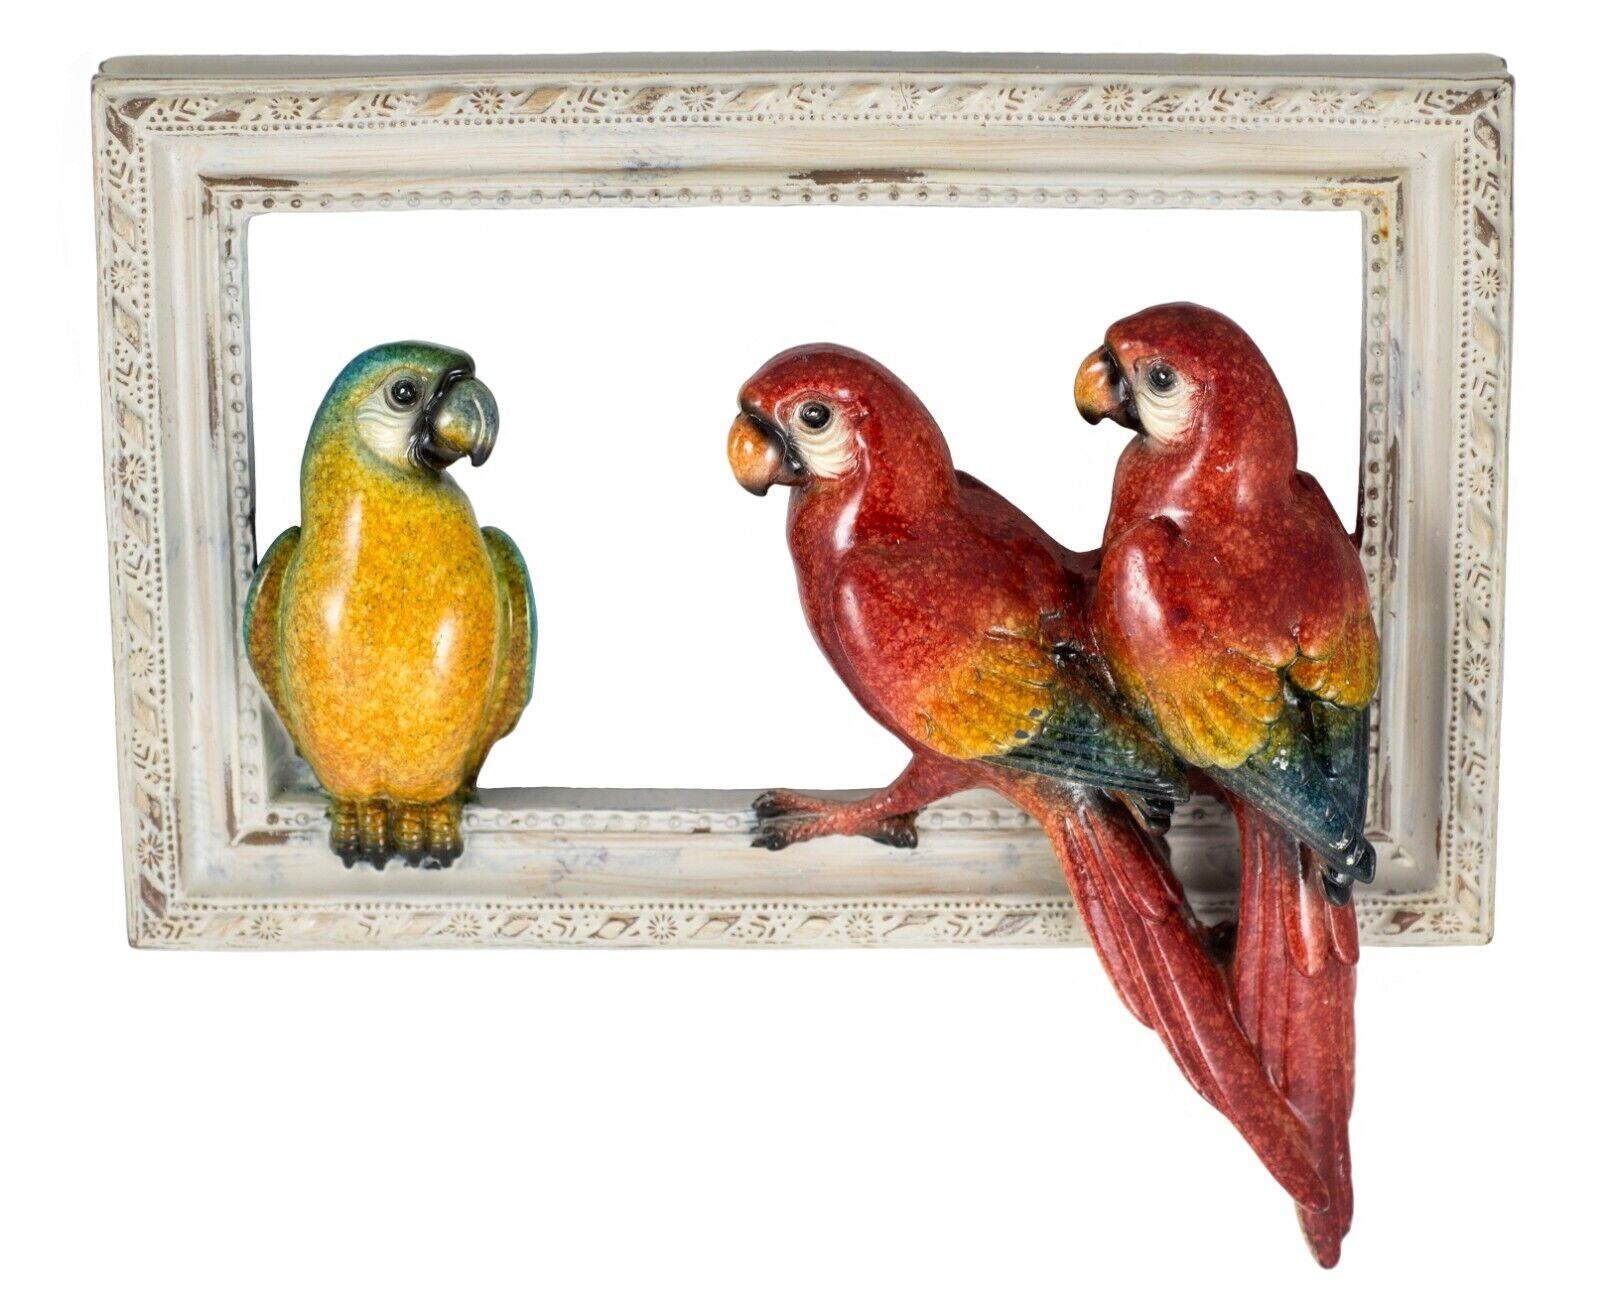 MACAWS PARROT Scarlet Trio Sculpture Direct from JOHN PERRY 7in long Figurine